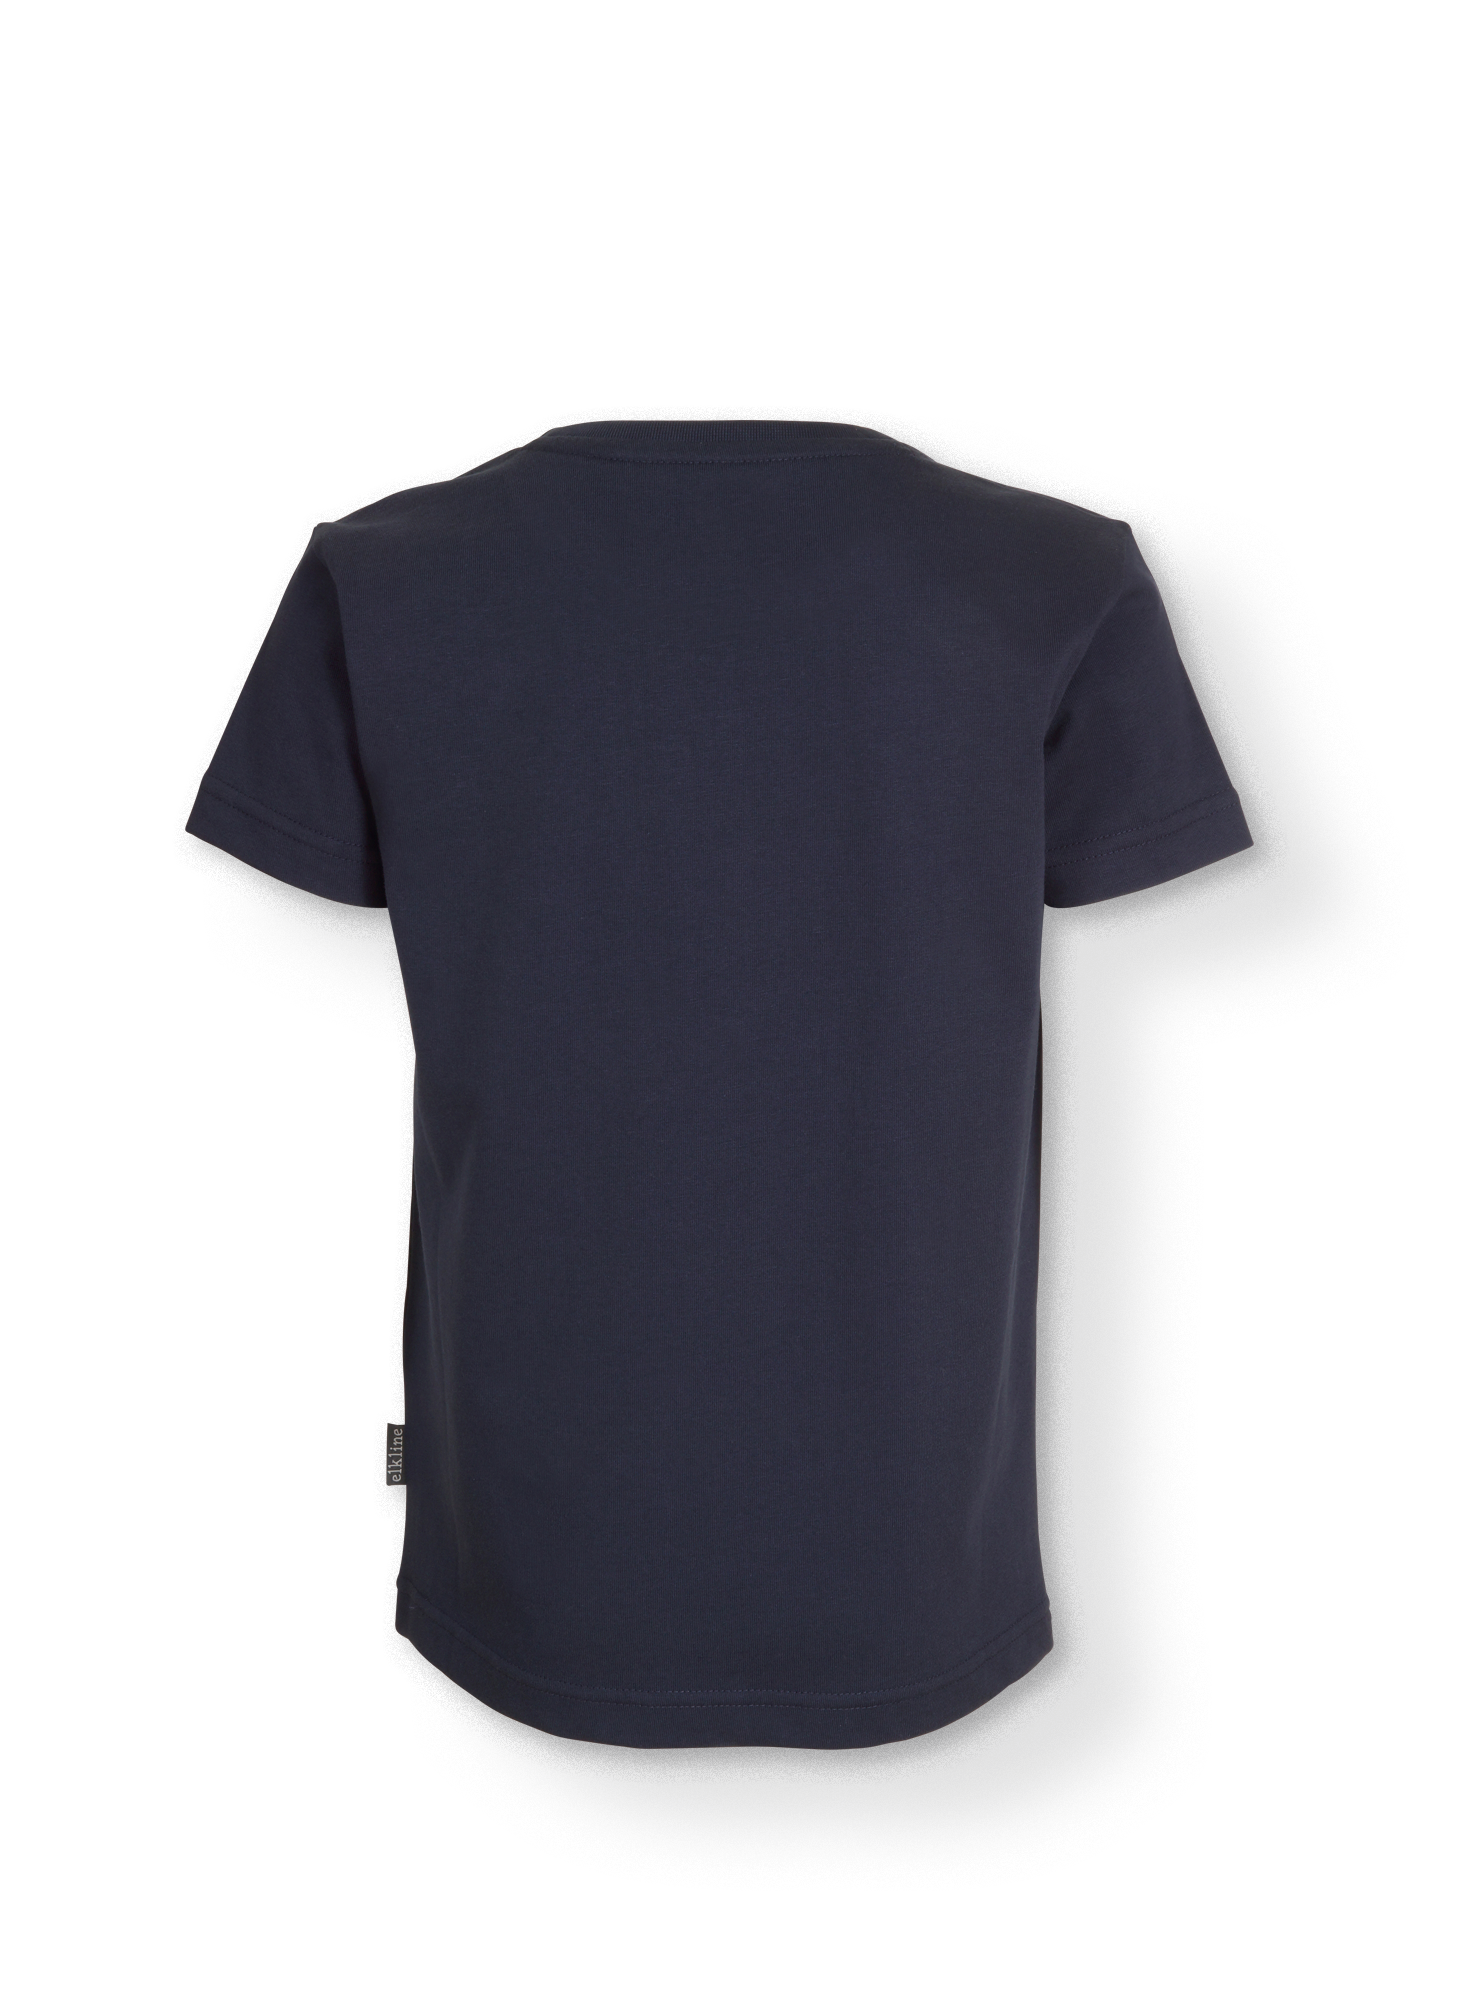 _abenteuer-navy-back-FS19.png